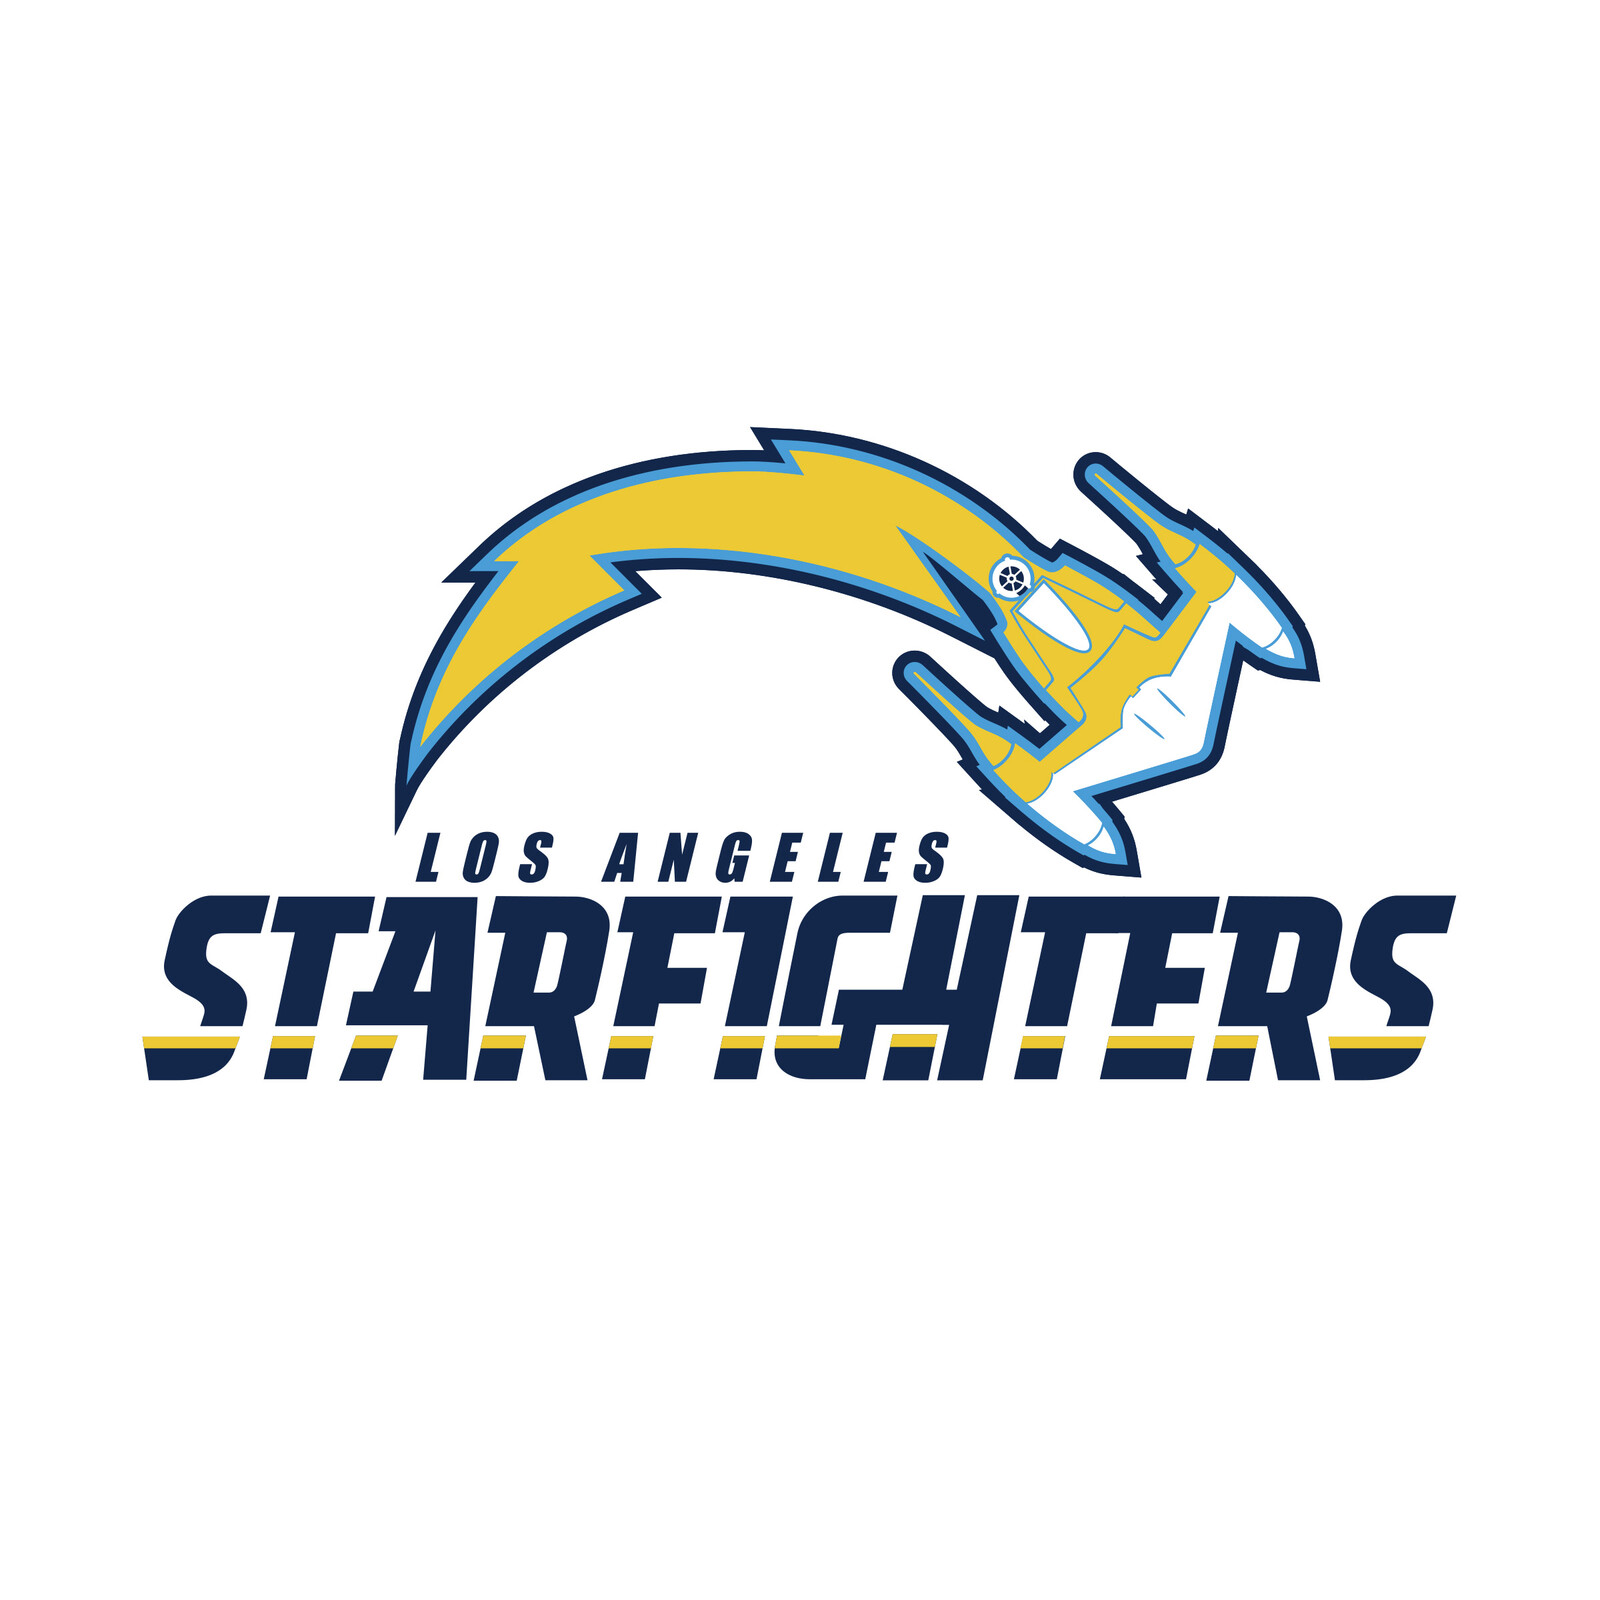 Los Angeles Starfighters